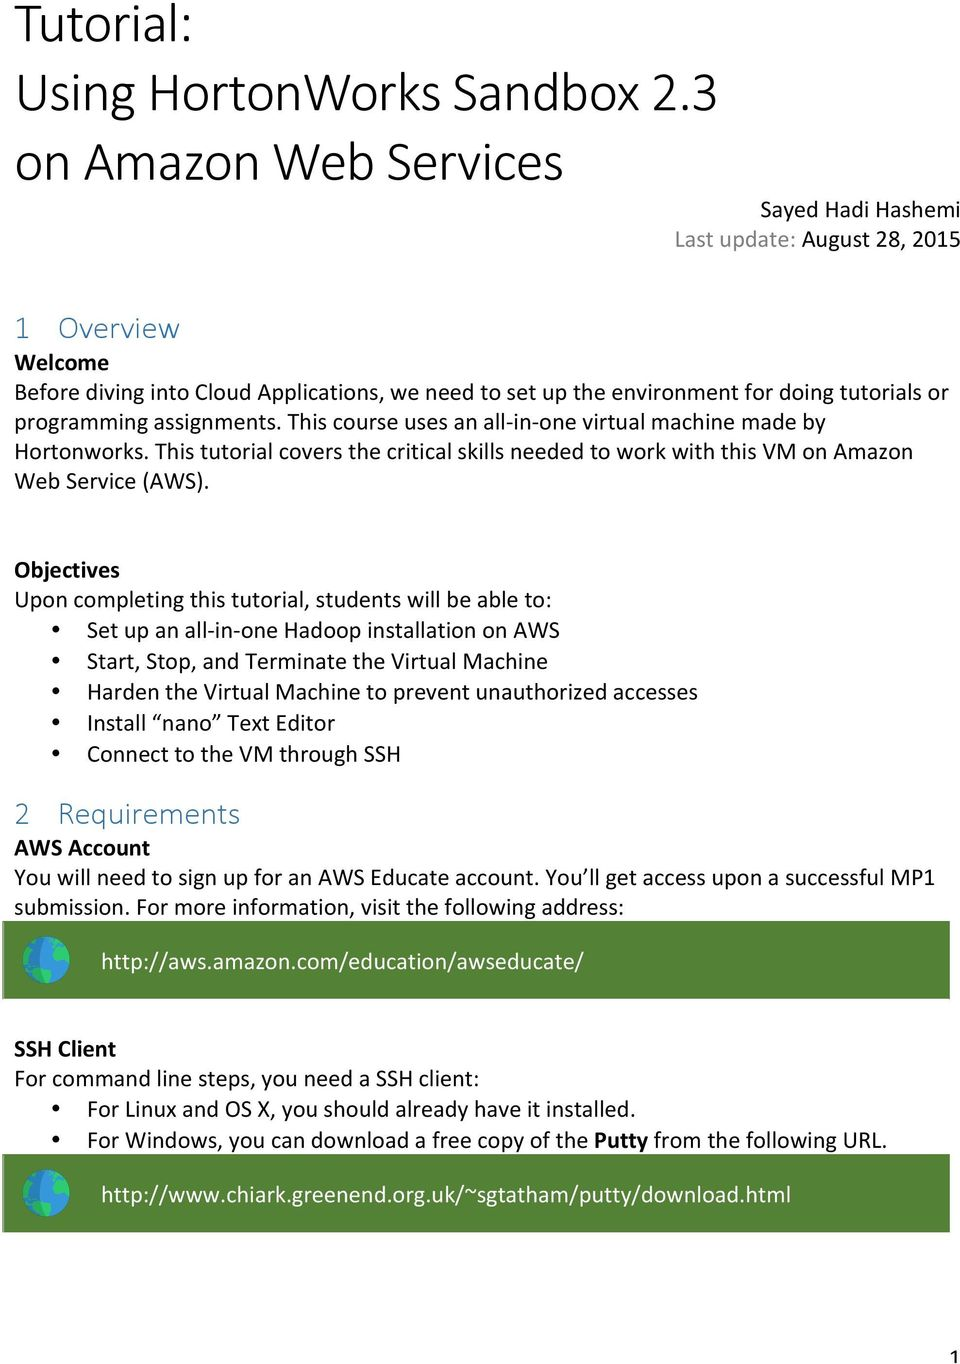 assignments. This course uses an all- in- one virtual machine made by Hortonworks. This tutorial covers the critical skills needed to work with this VM on Amazon Web Service (AWS).